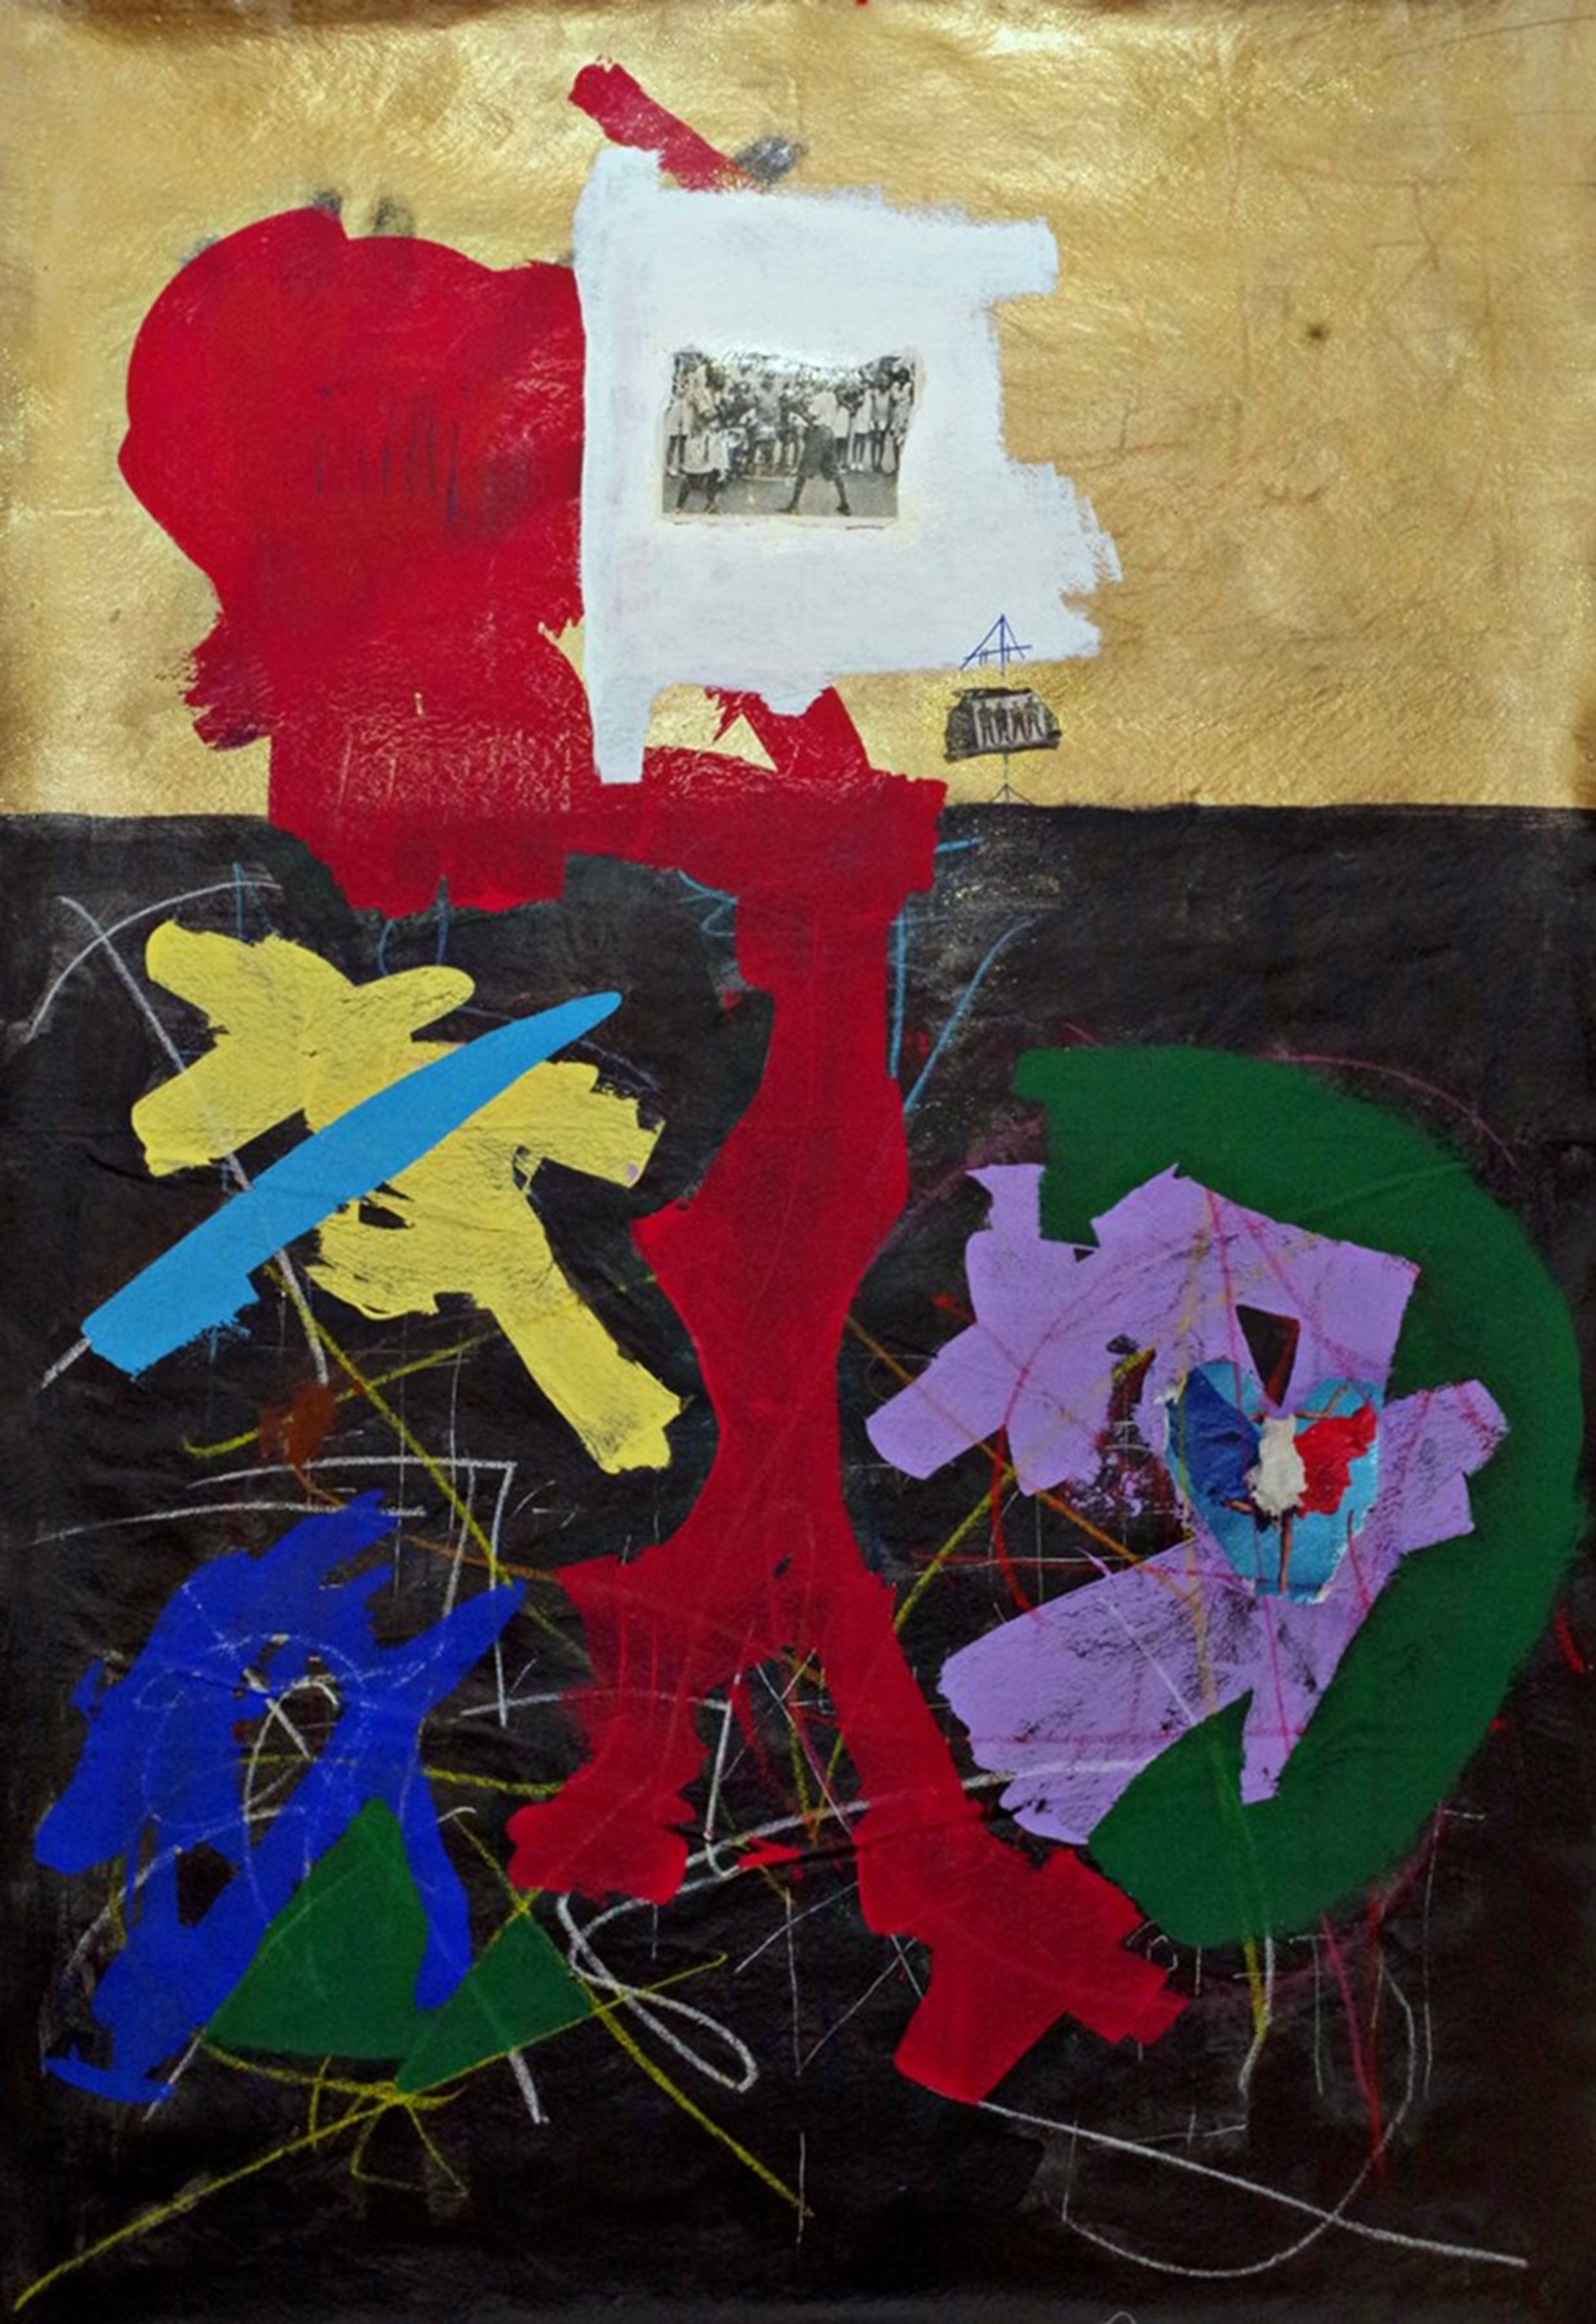 Kwesi Abbensetts, A Fighting Love, 2018,  Acrylic on canvas, 78 x 48 inches, Abstract painting divided into black and gold rectangles with red, blue, yellow, green and violet marks on top, Kwesi Abbensetts is a New York based painter.